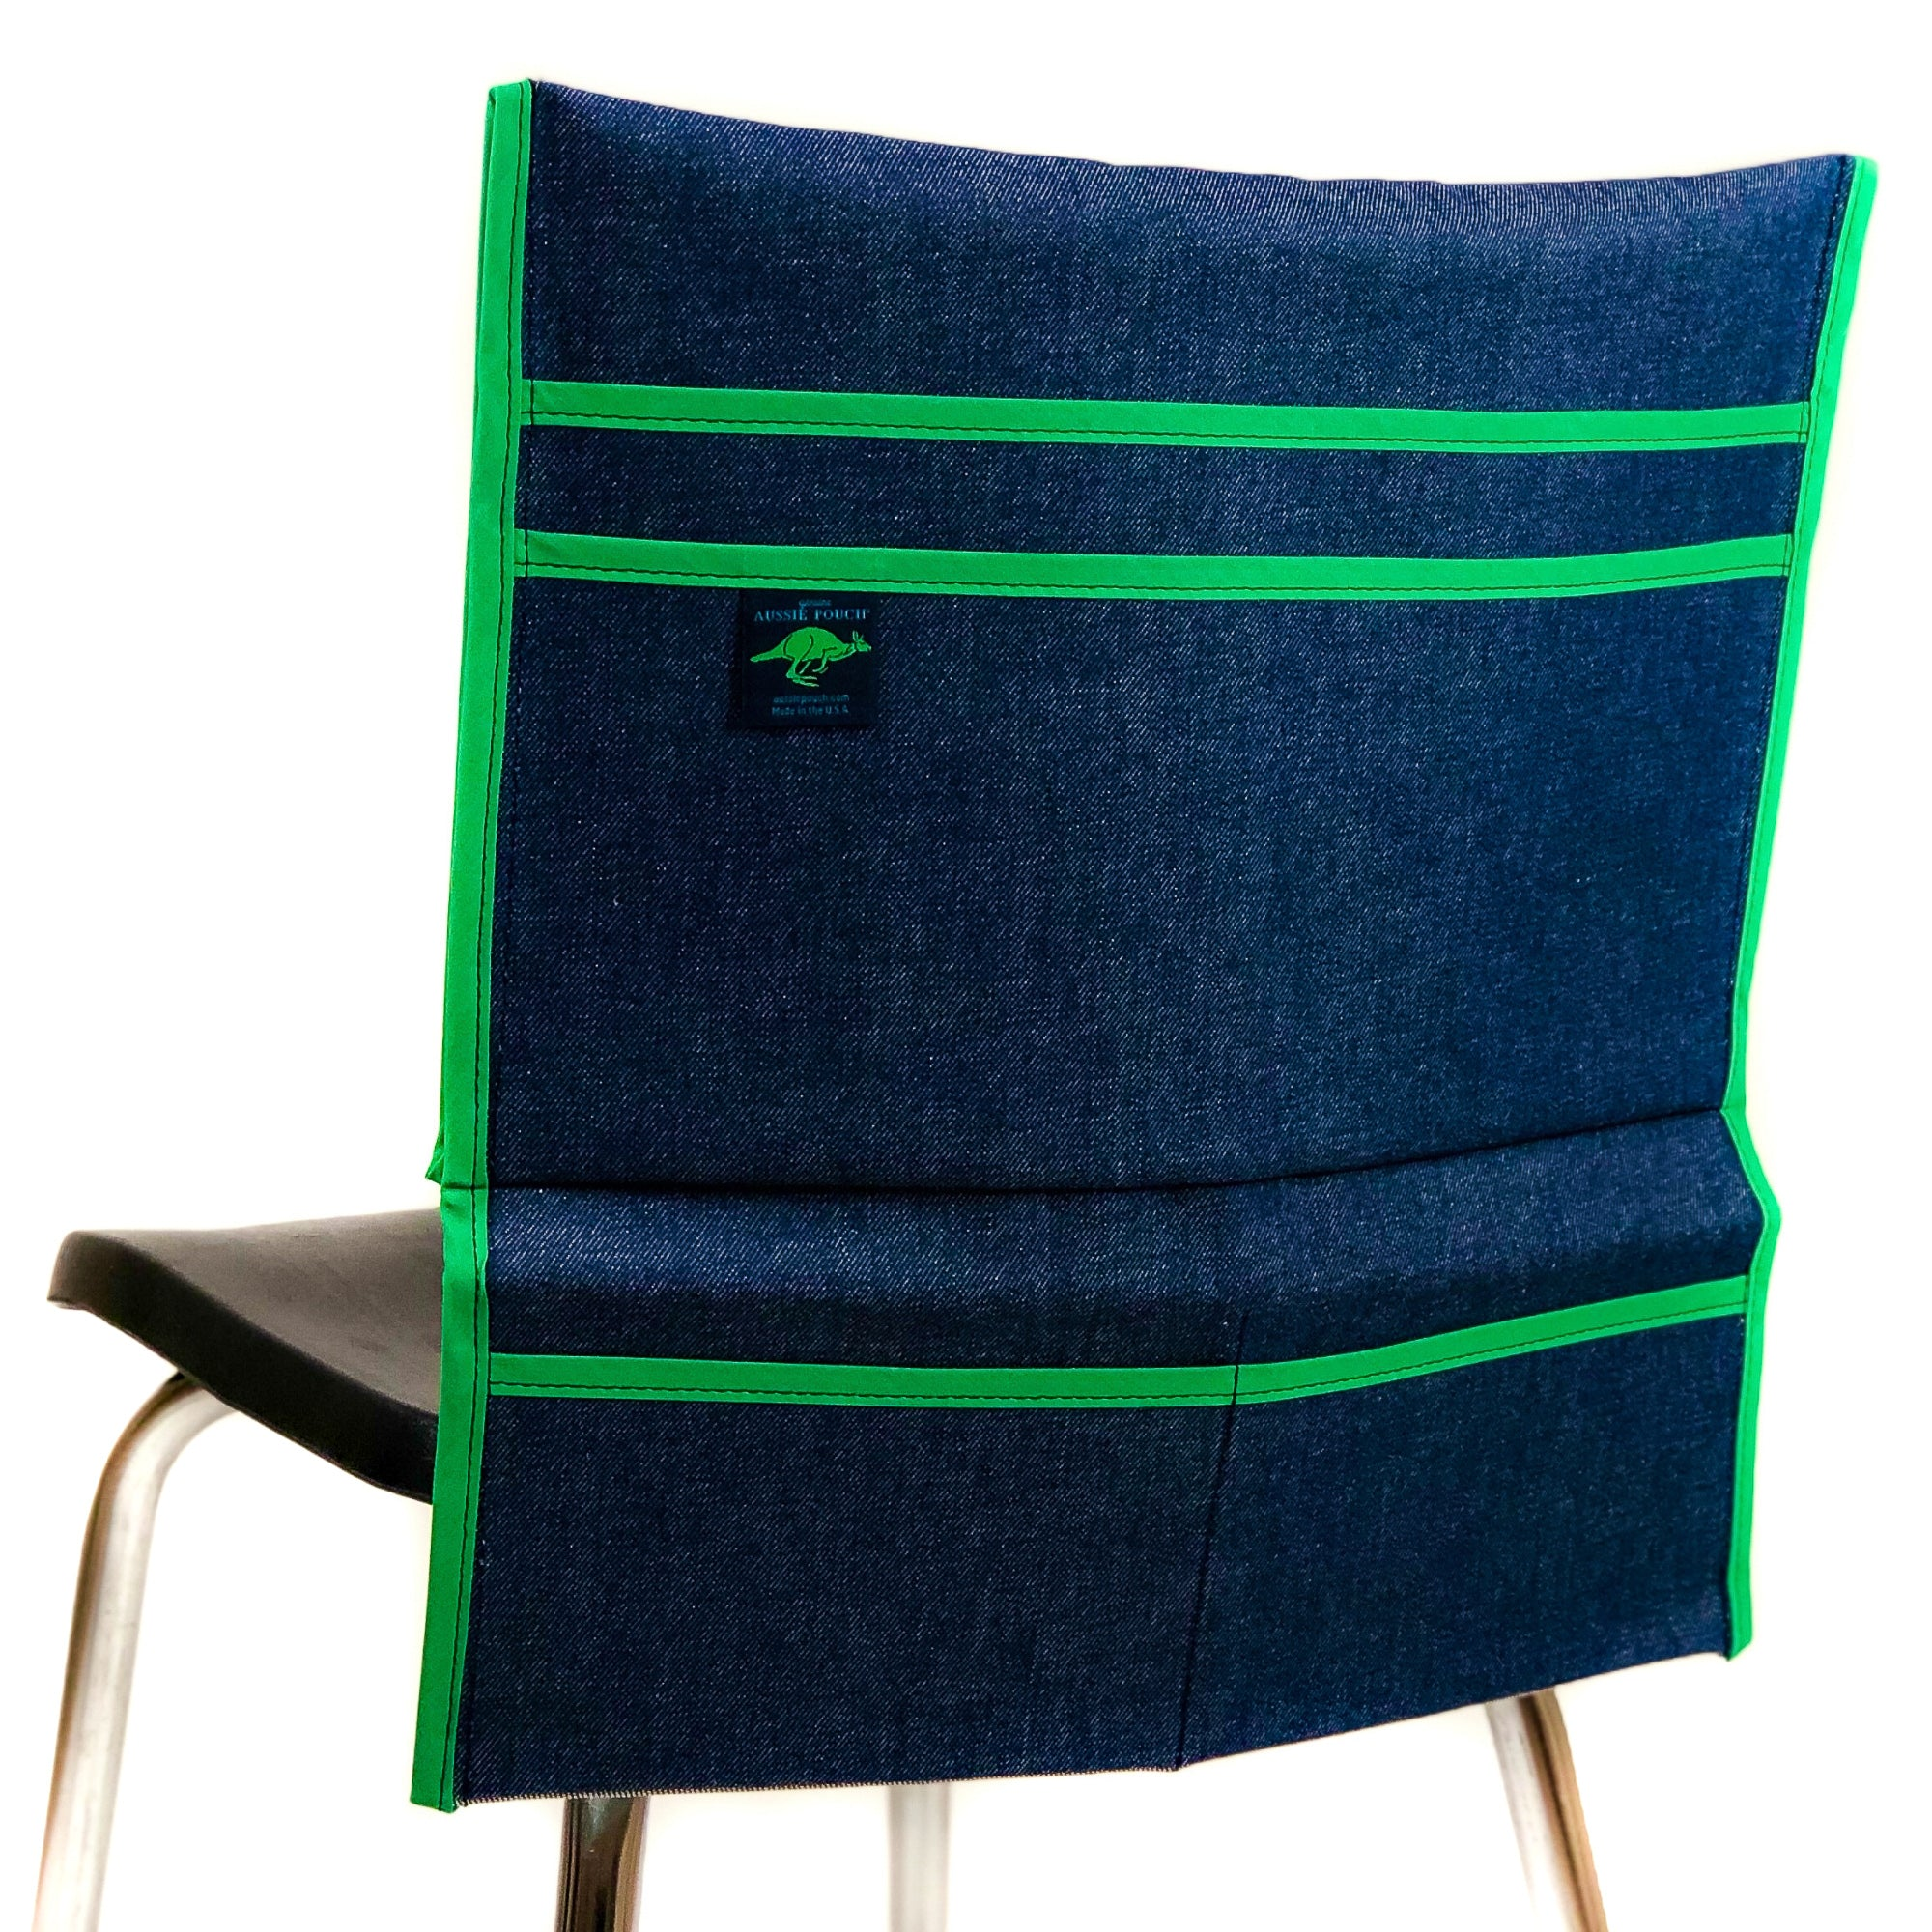 Aussie Pouch Organizer Chair Pocket Green Trim